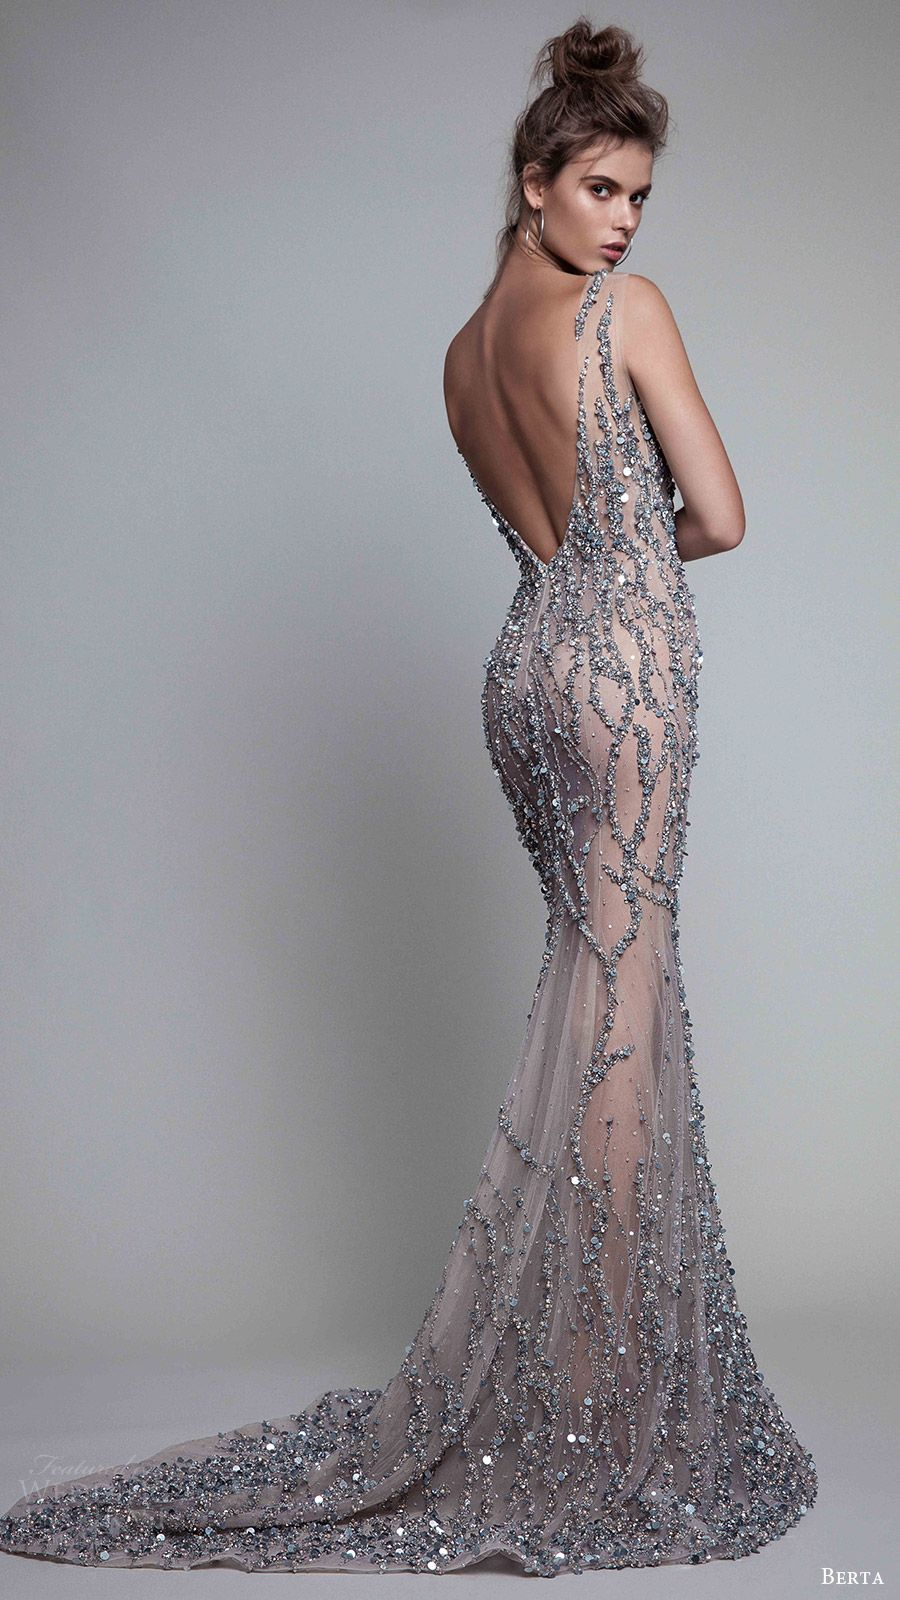 berta rtw fall 2017 (17 10) sleeveless illusion bateau neck beaded trumpet evening  dresses bv cd674d131